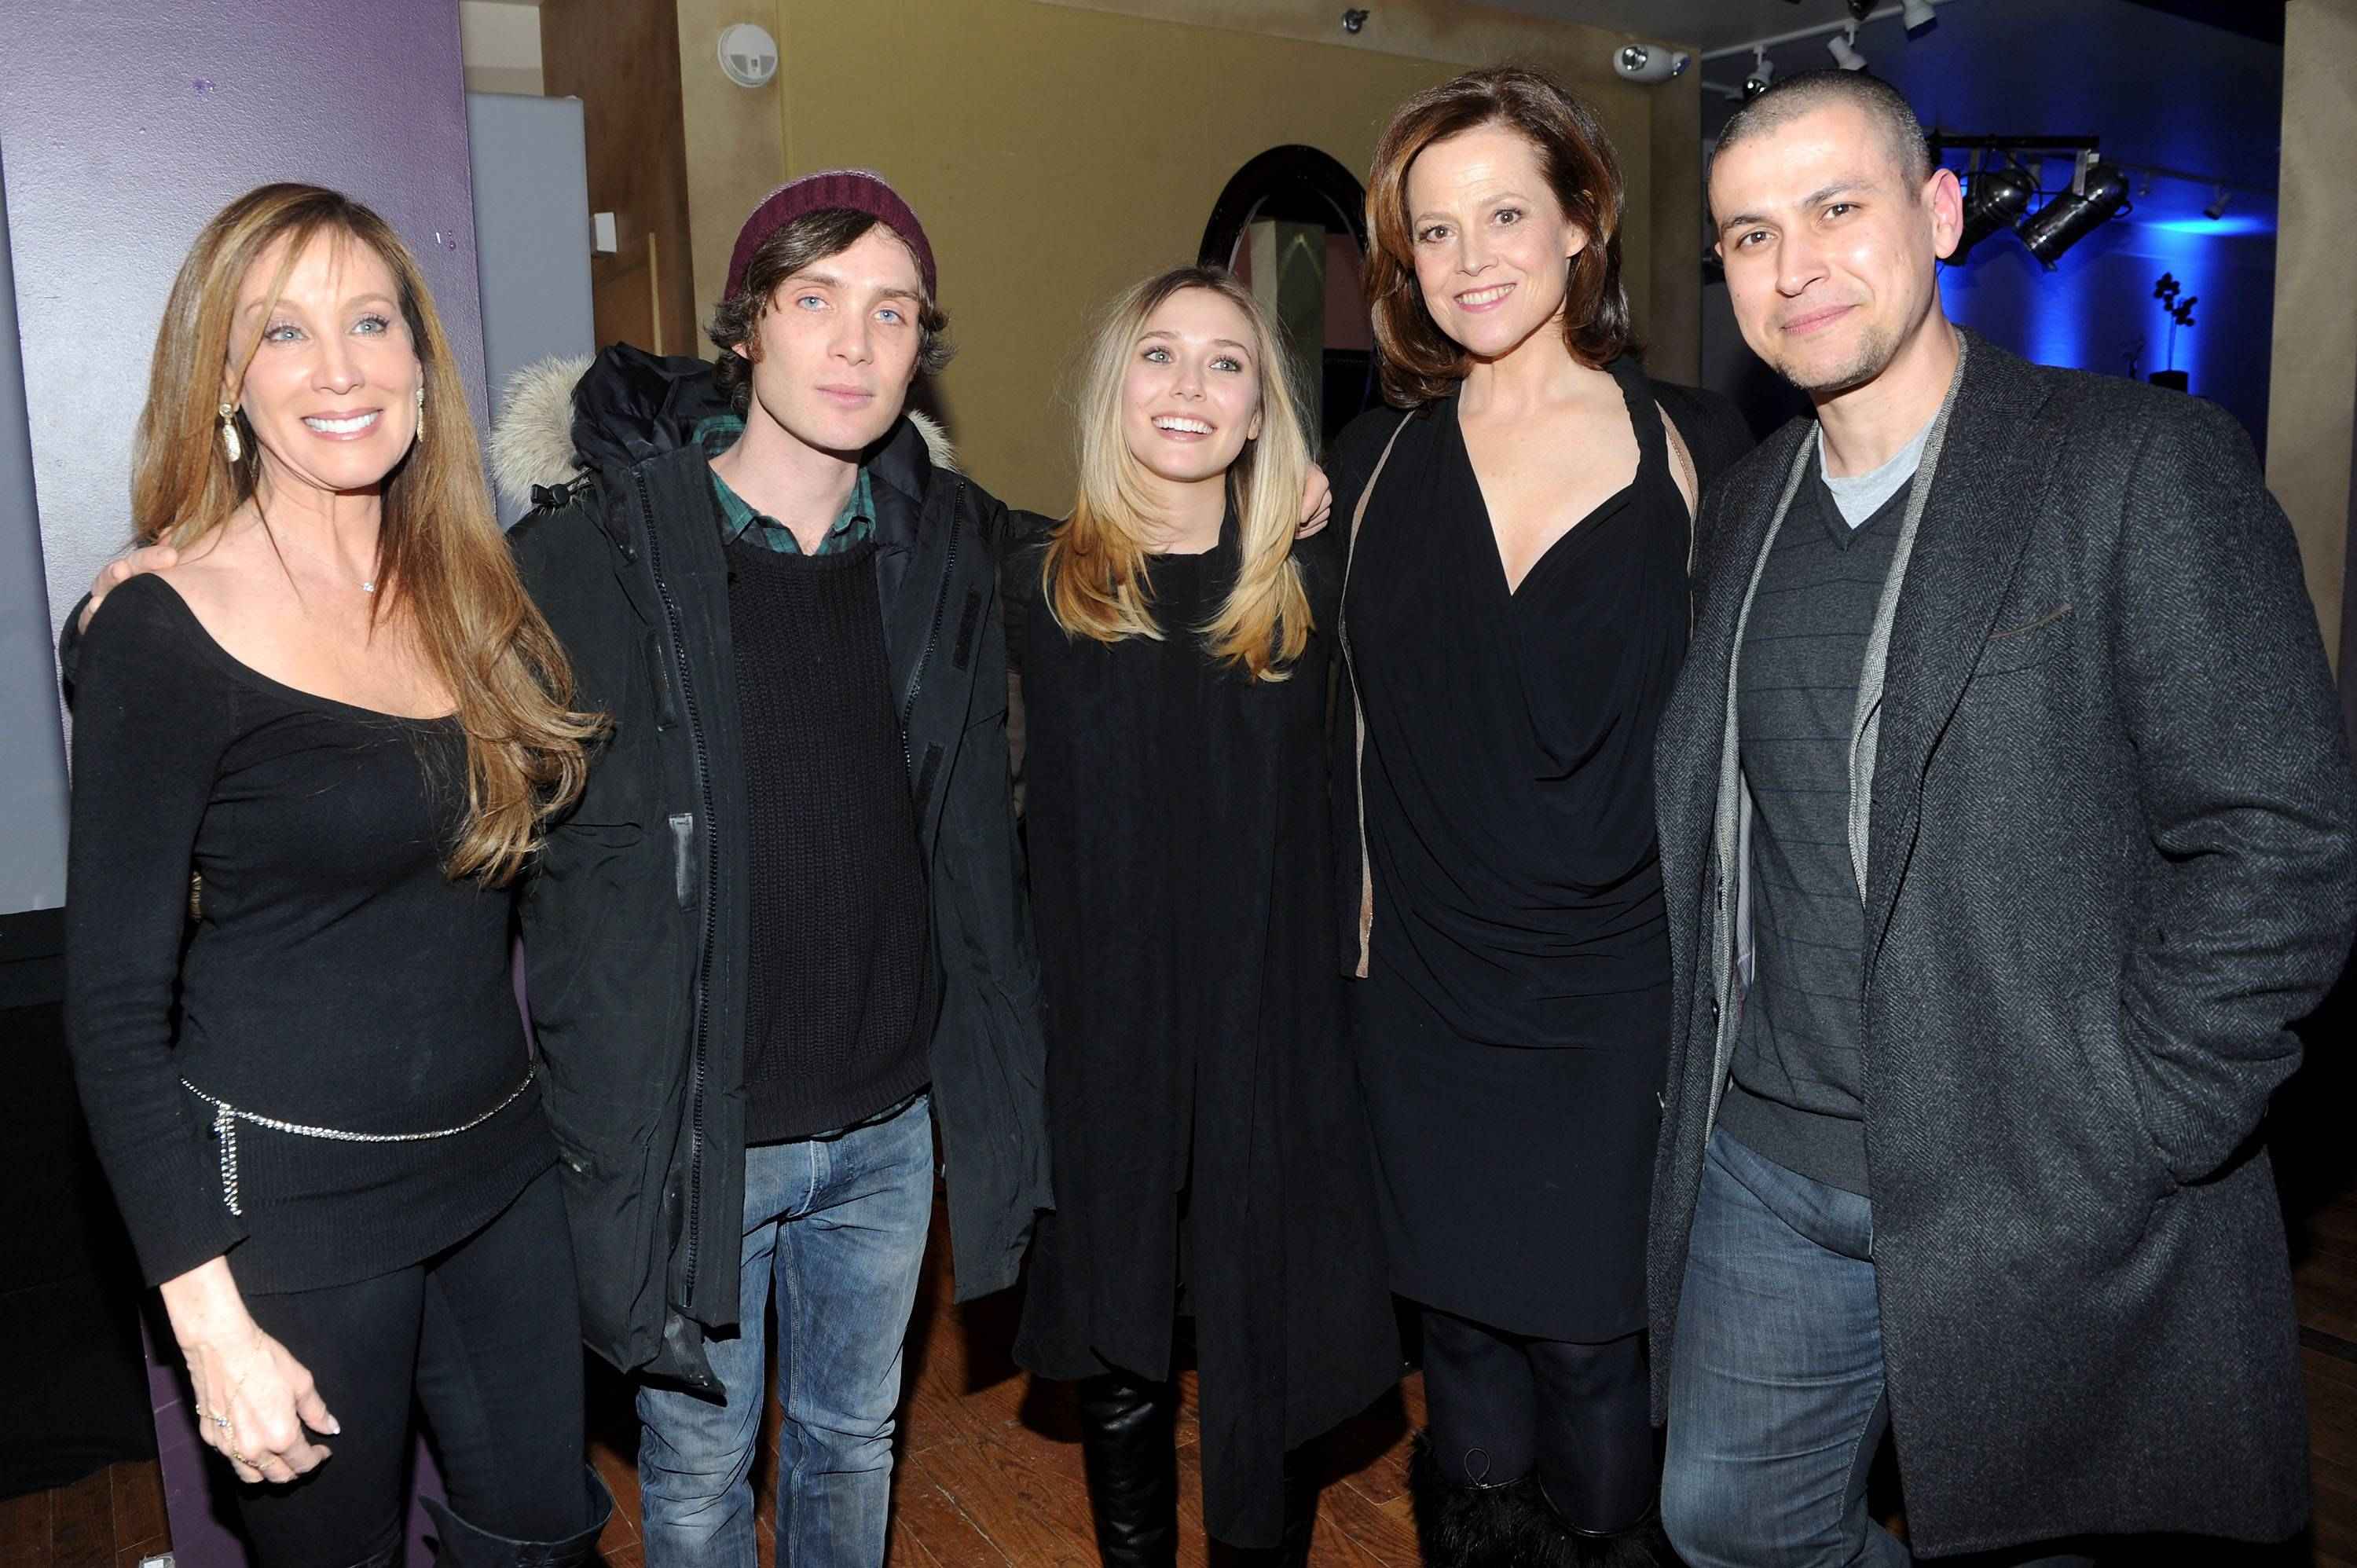 Cindy Cowan, Cillian Murphy, Elizabeth Olsen, Sigourney Weaver and Rodrigo Cortes at the